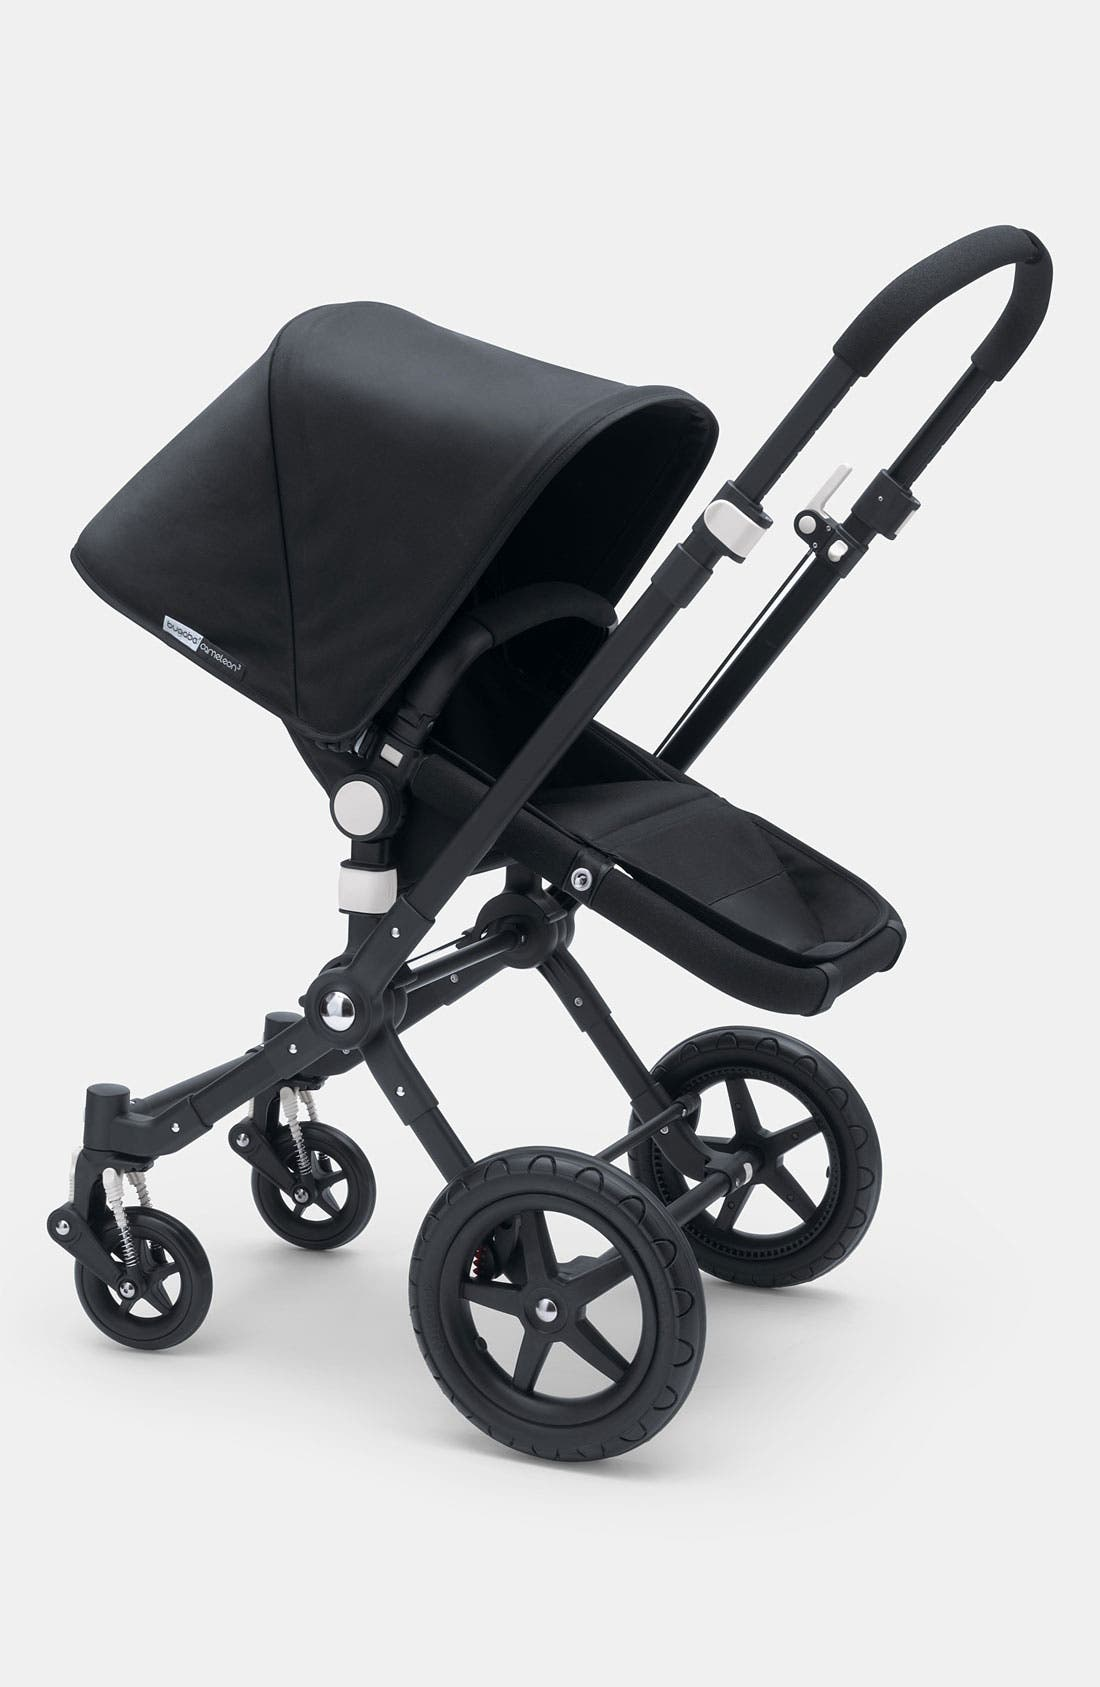 Alternate Image 2  - Bugaboo 'Cameleon³' Stroller - All Black Frame with Fabric Set (Special Edition)